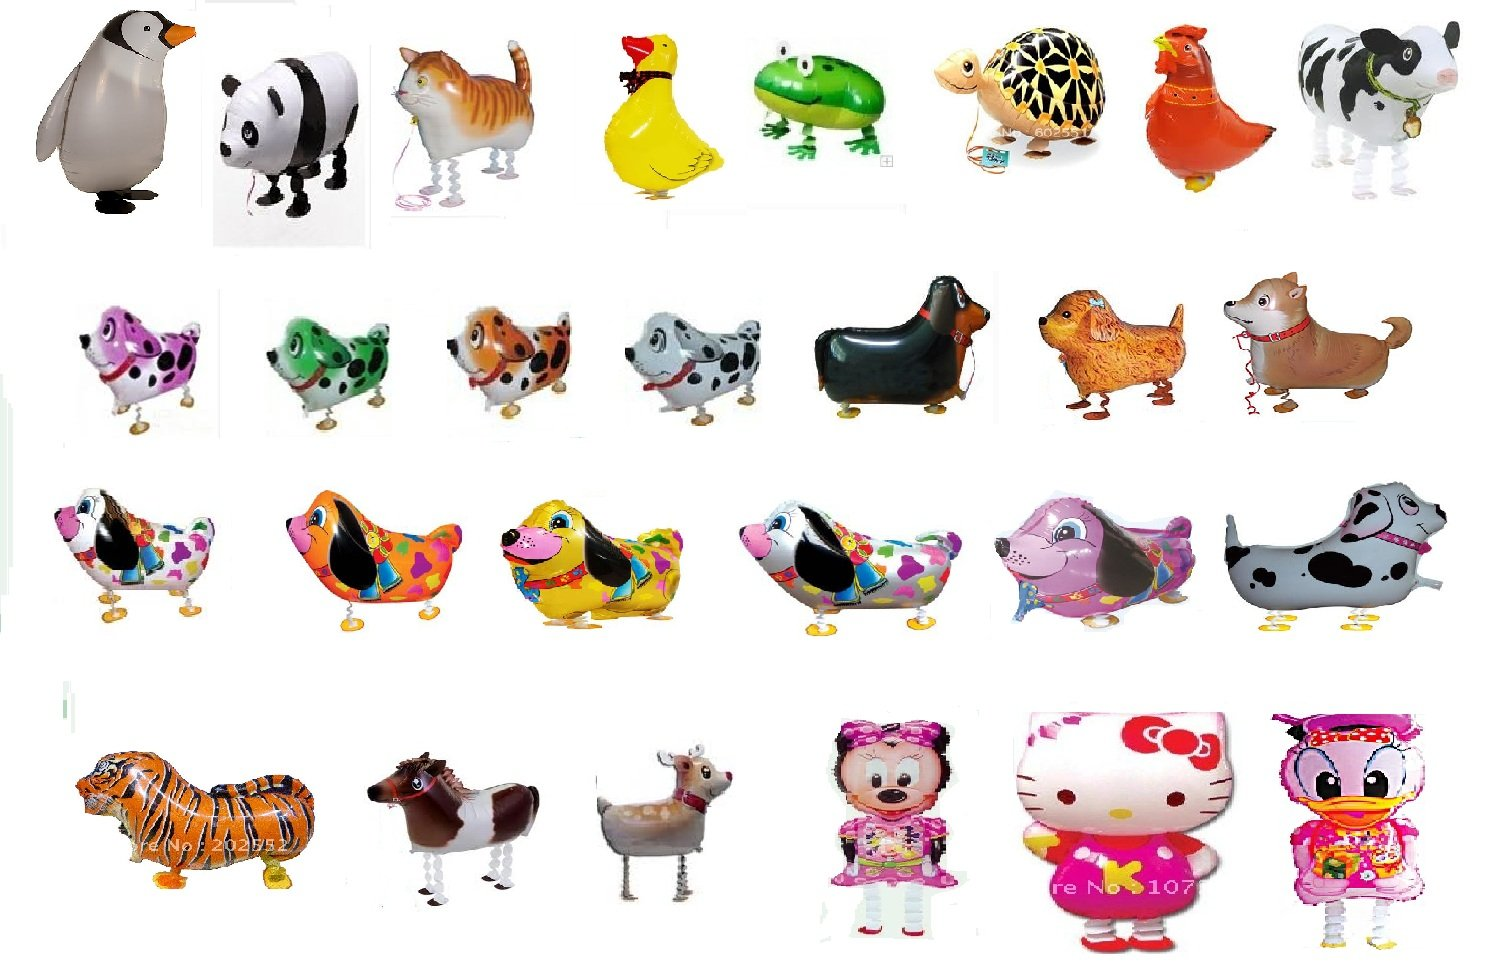 SET OF 100 WALKING ANIMAL BALLOON PETS AIR WALKERS, MIXED